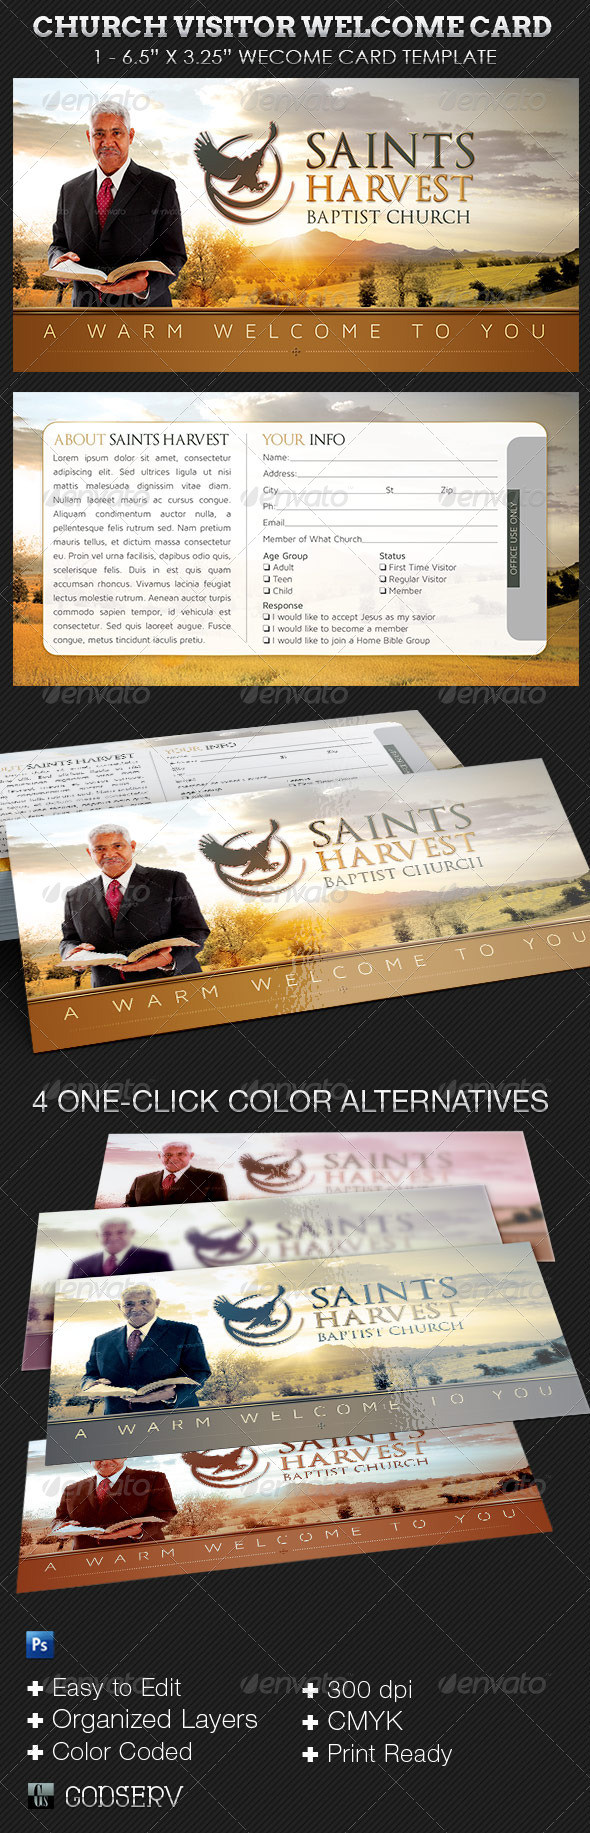 Church-Visitor-Welcome-Card-Template-Preview